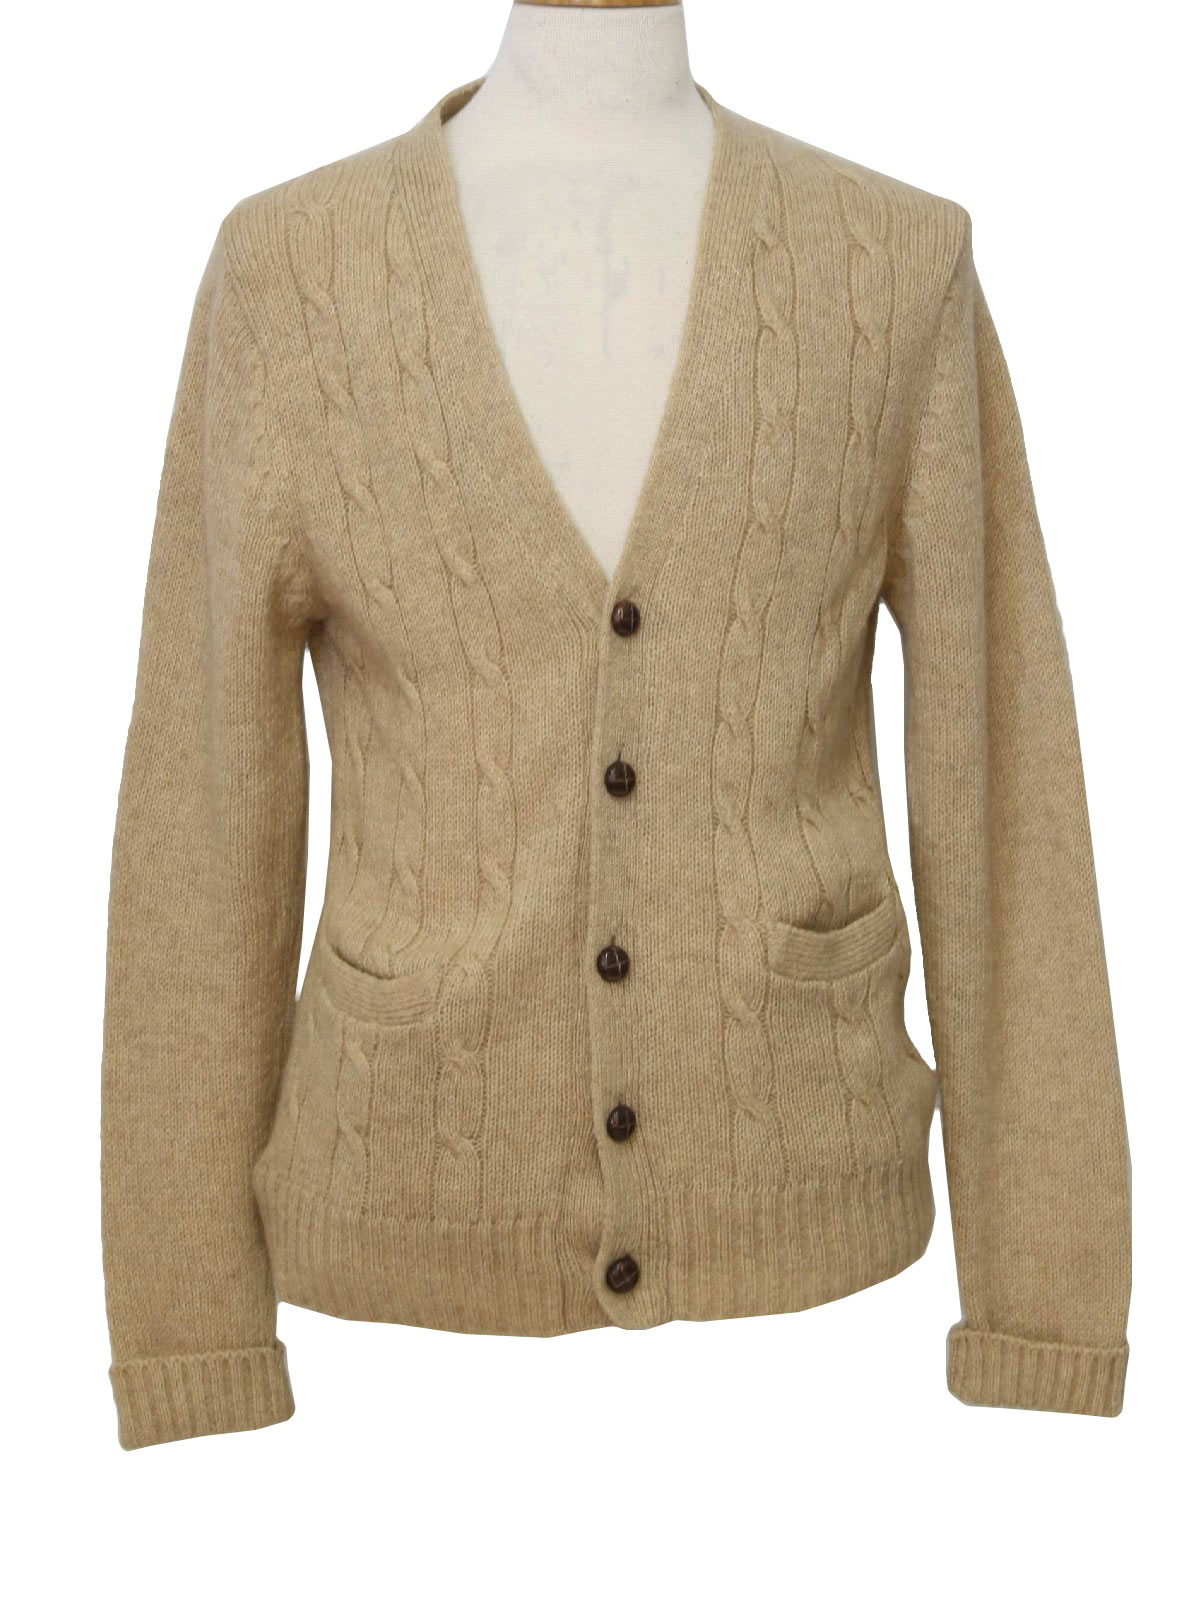 Aran Sweater Market Free Shipping